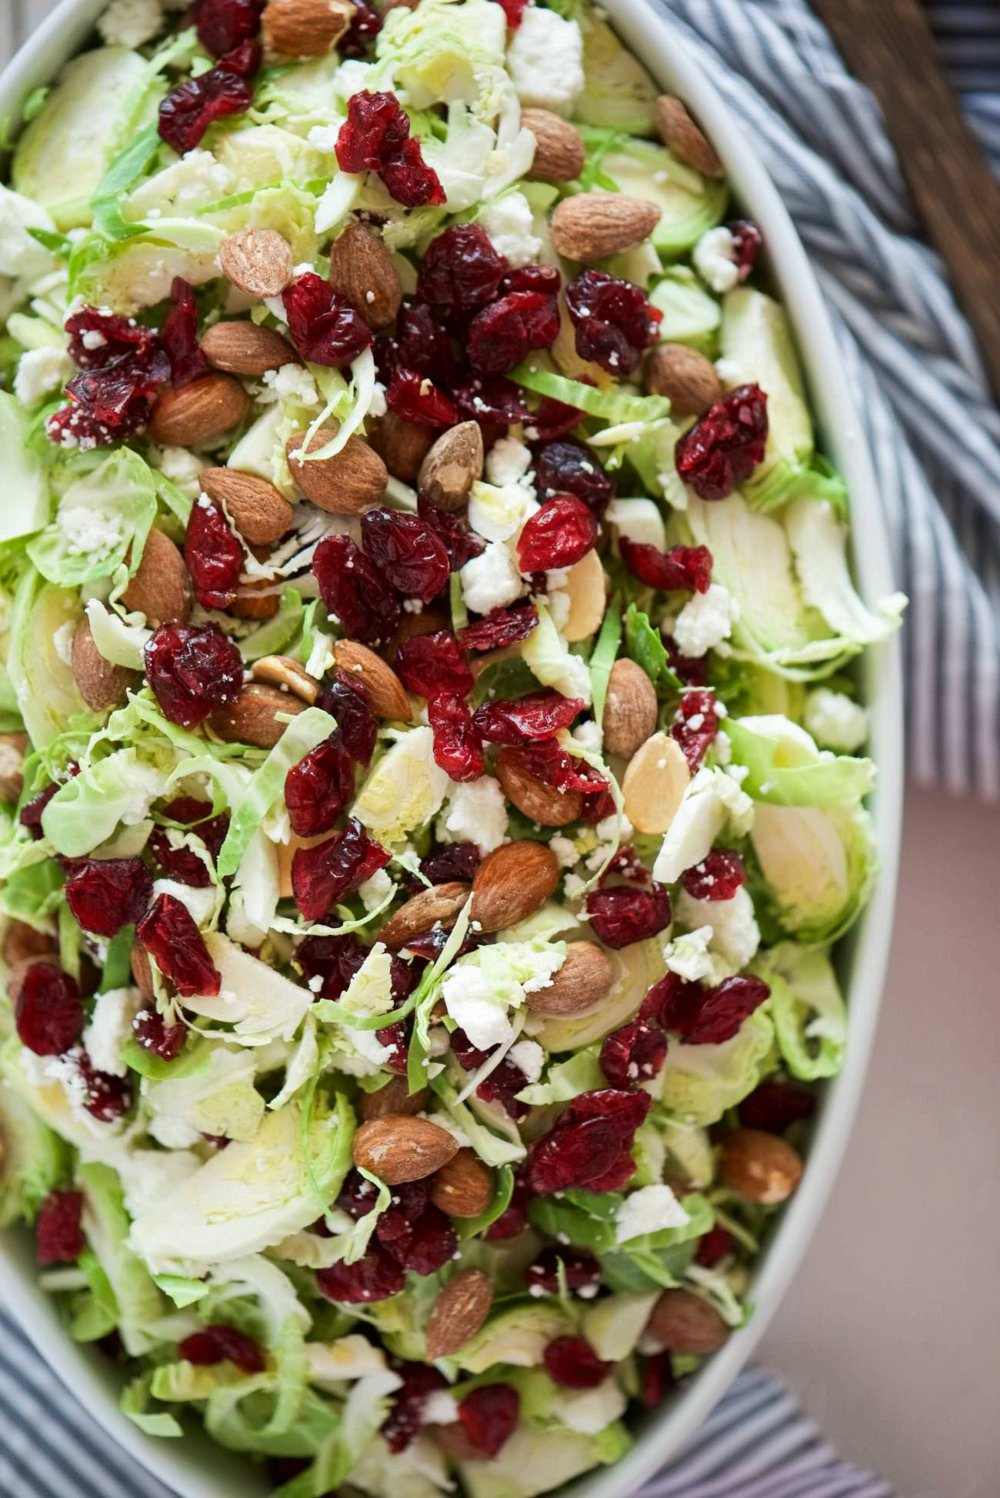 Spring Shaved Brussels Sprout Salad with Lemon Poppyseed Dressing